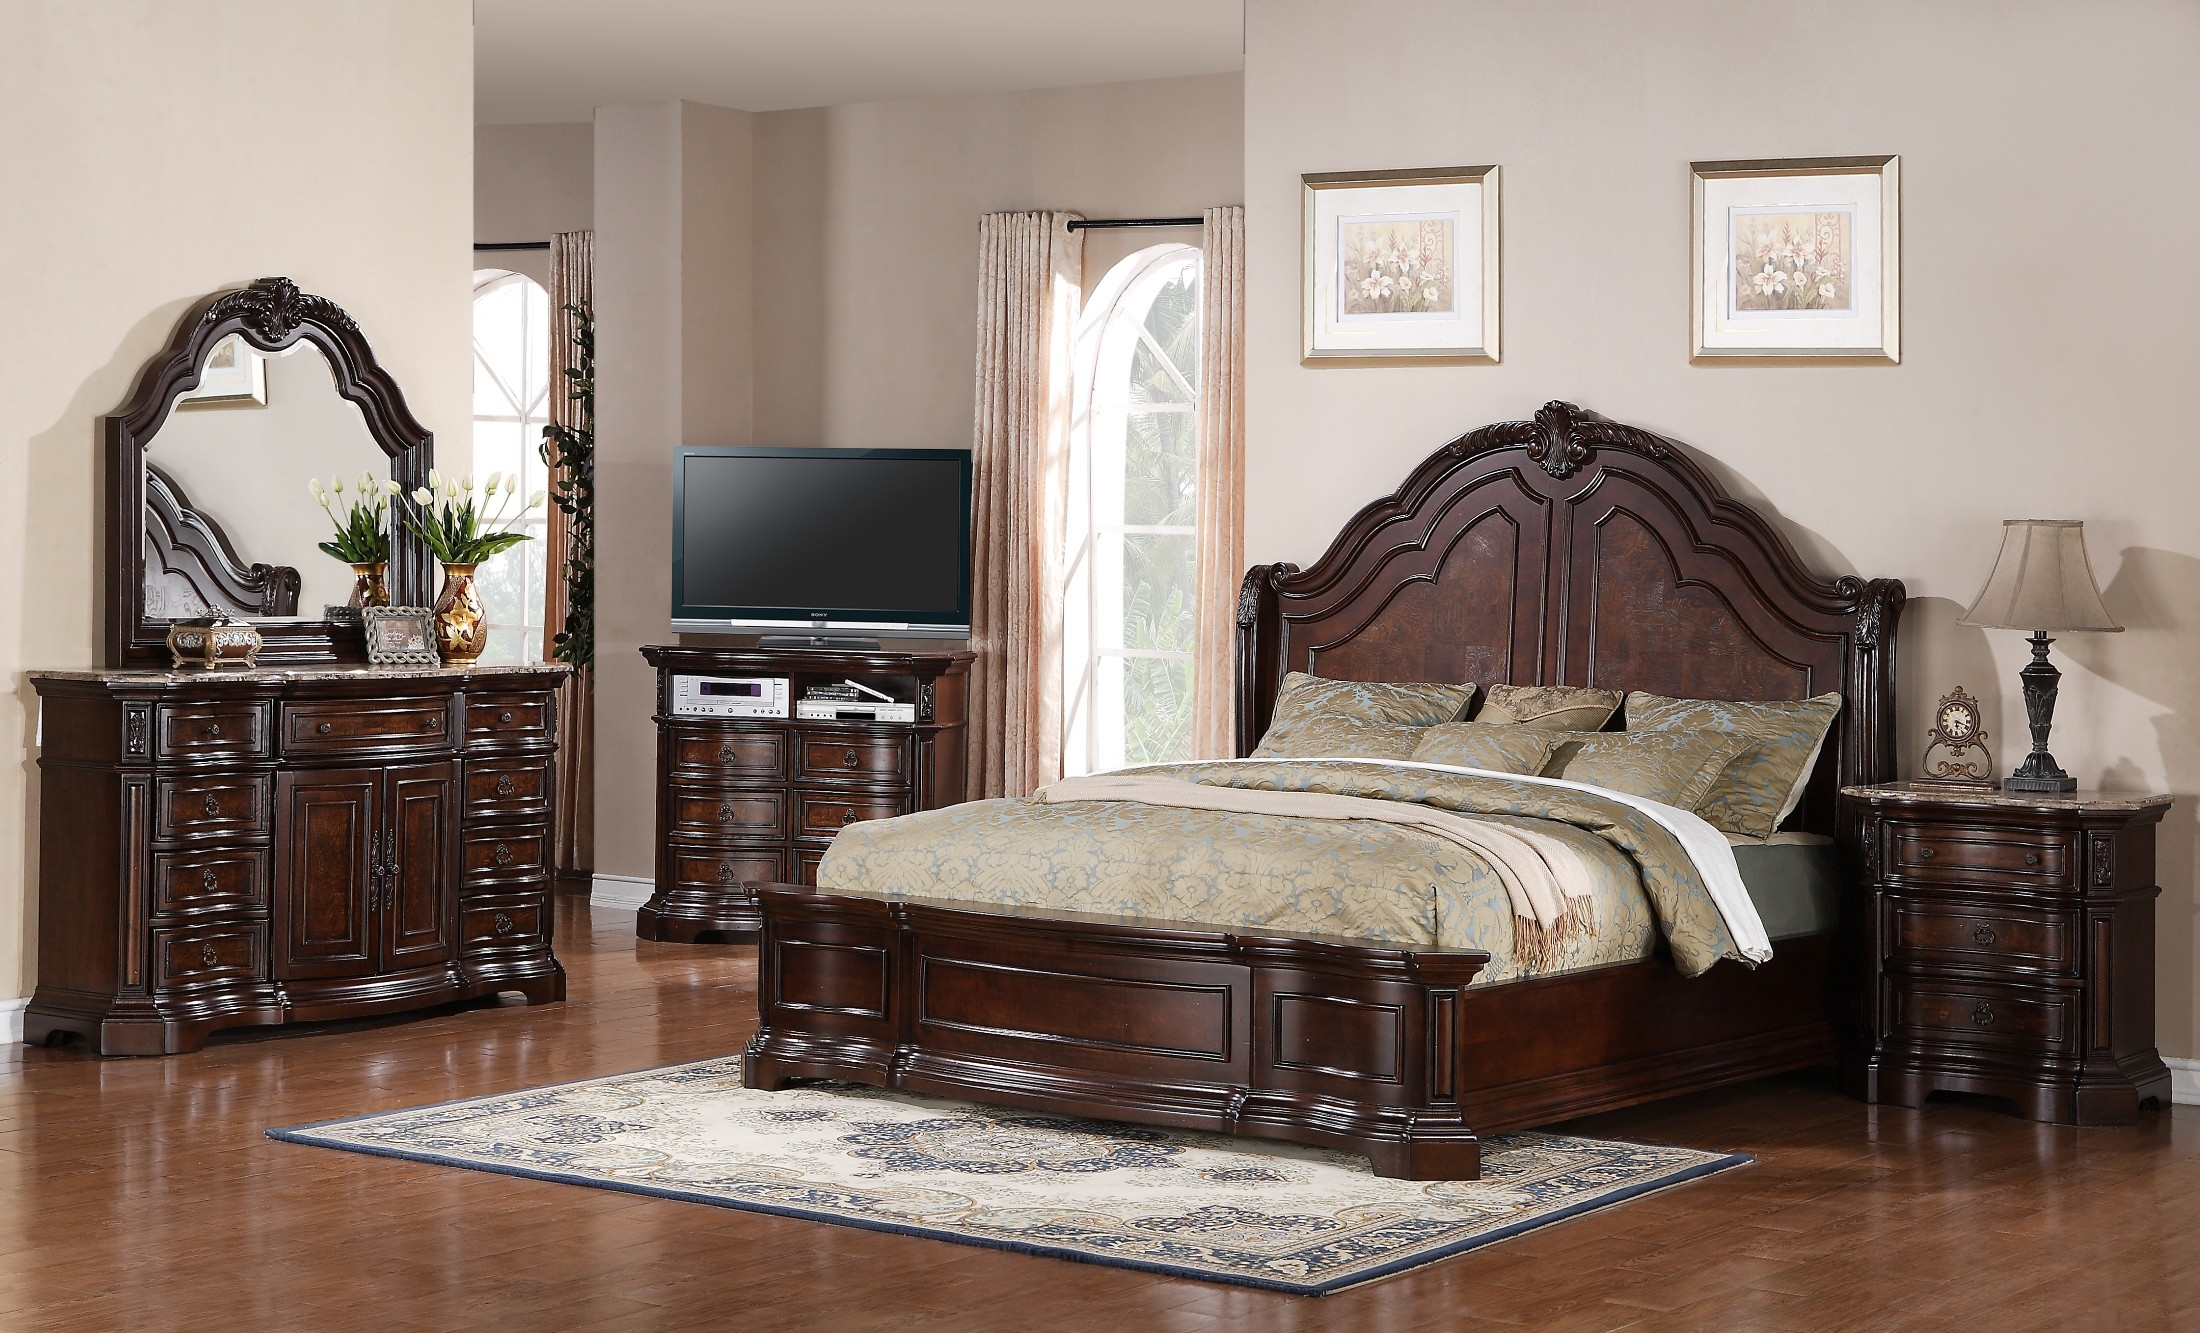 Edington Panel Bedroom Set From Samuel Lawrence 8328 252